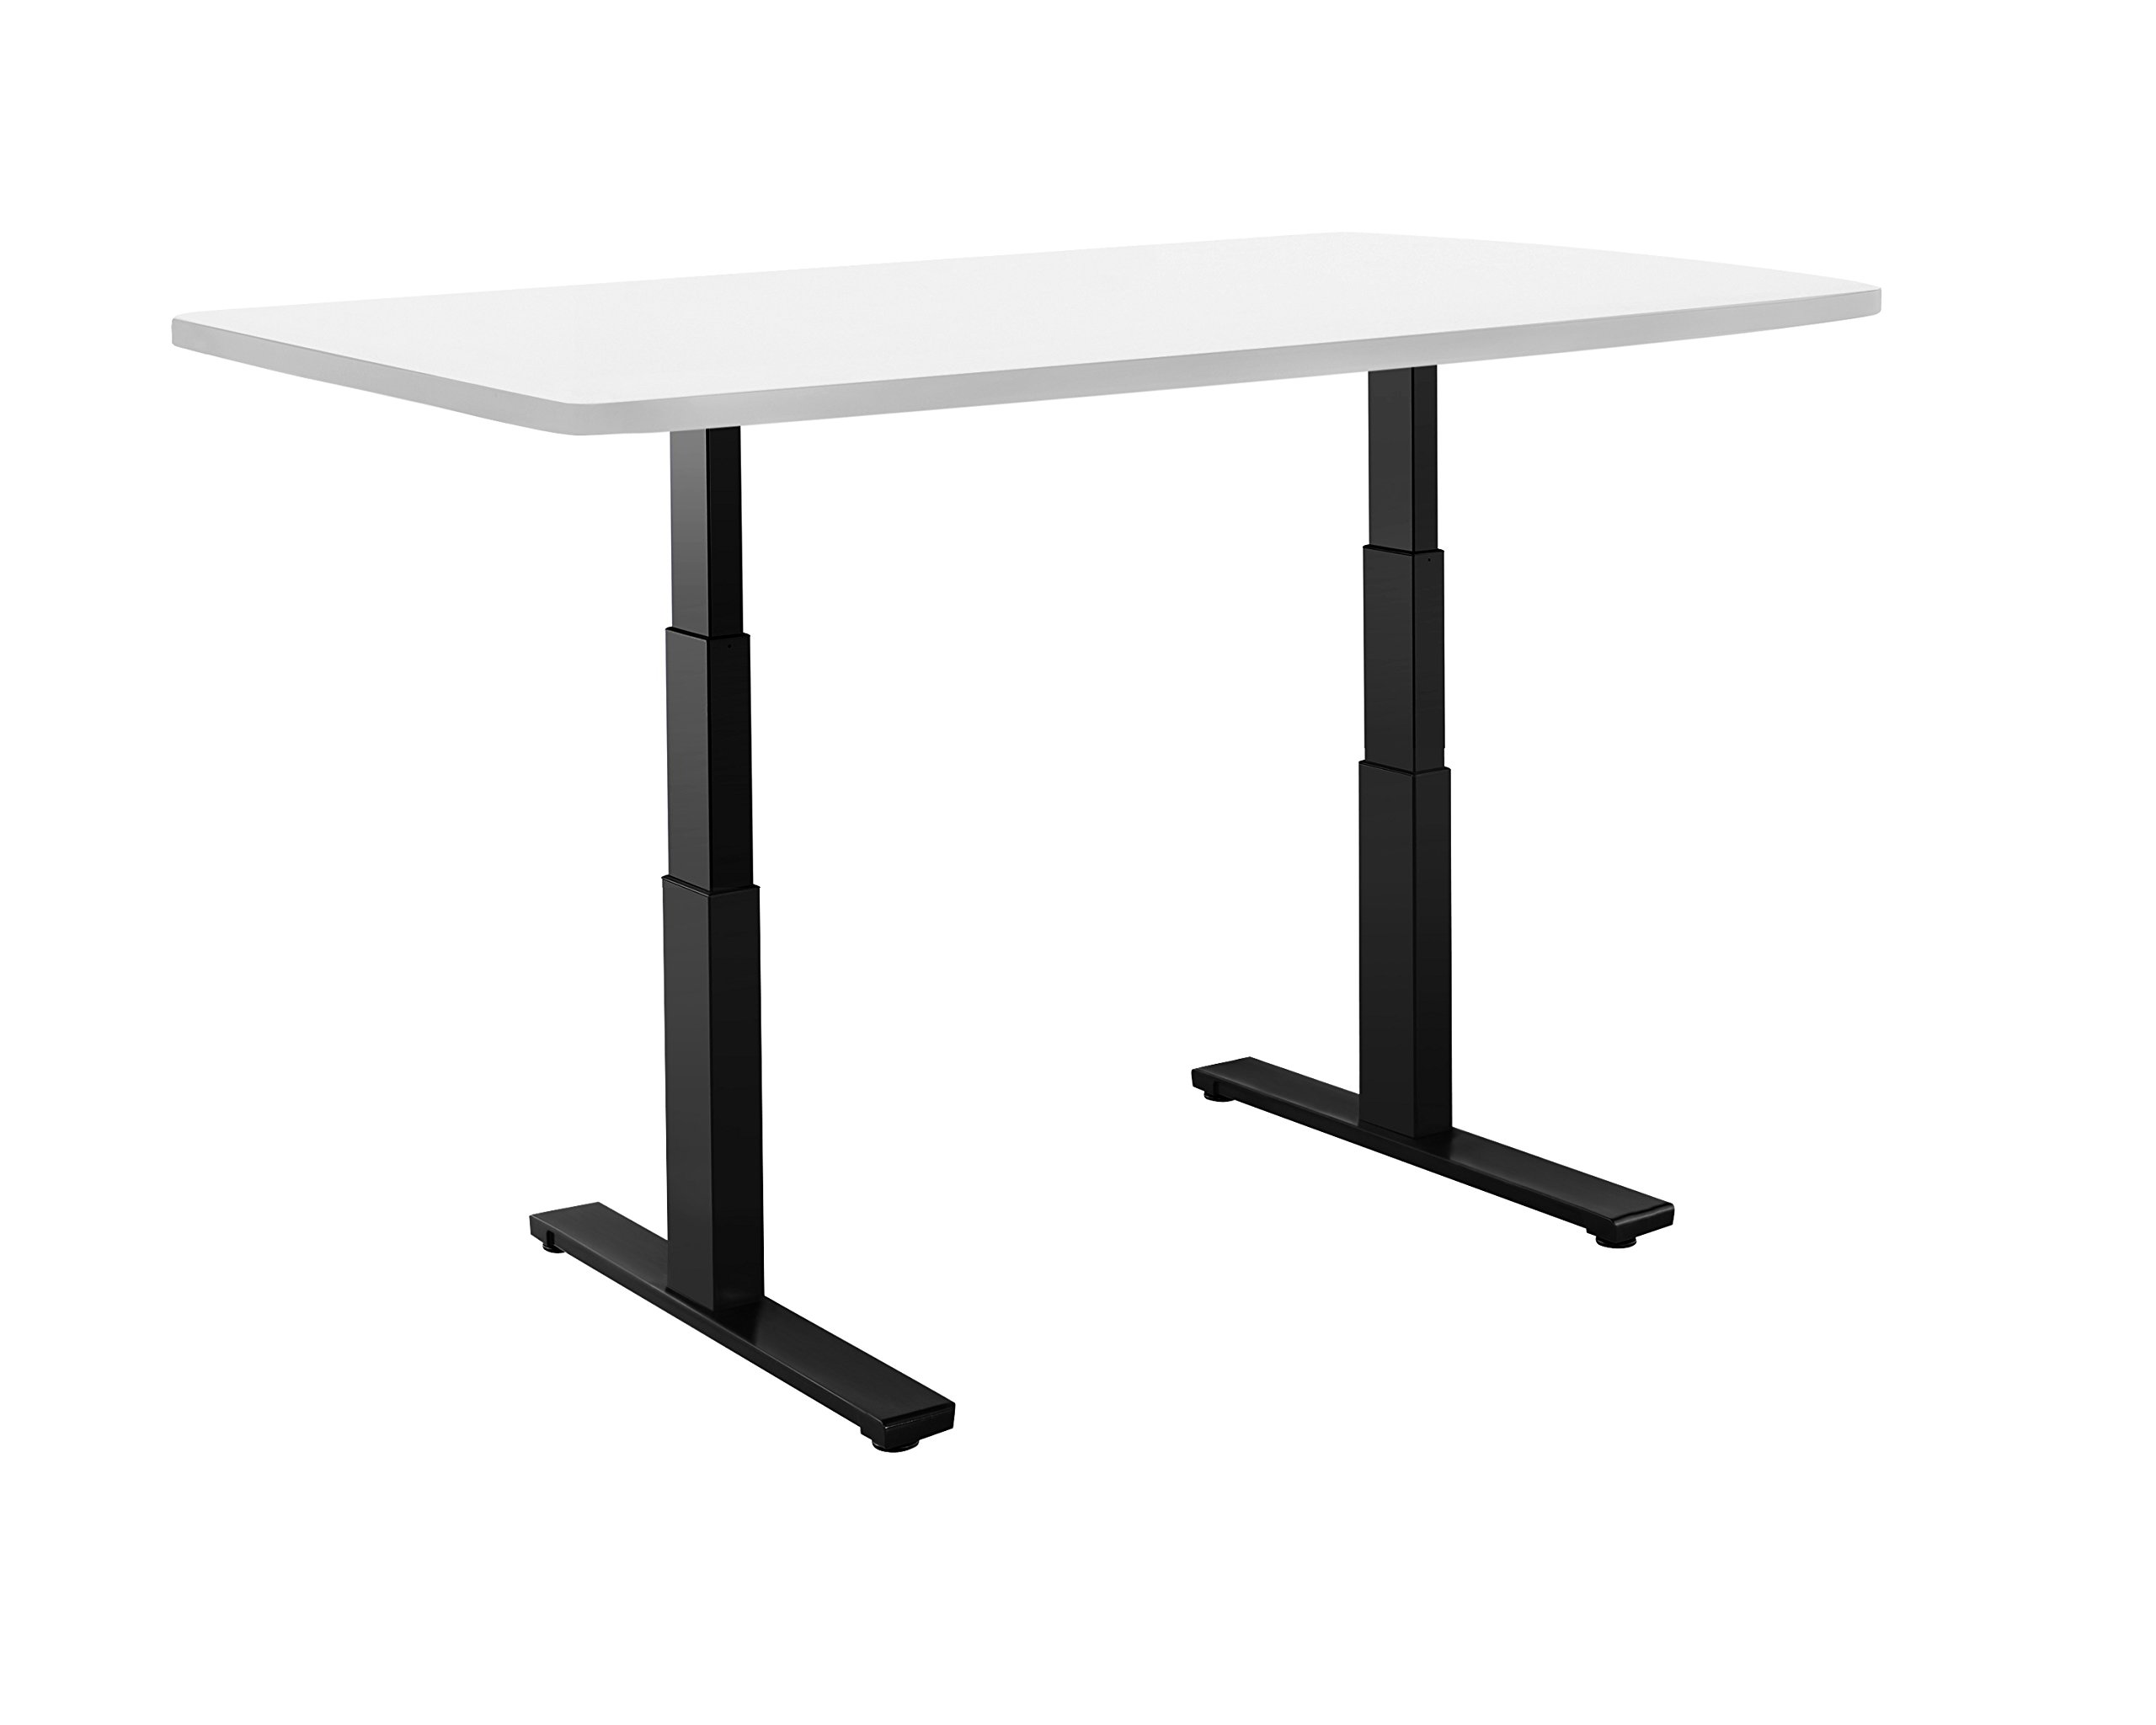 Autonomous Classic Sit-to-Stand Desk with Black Frame, Solid White Top